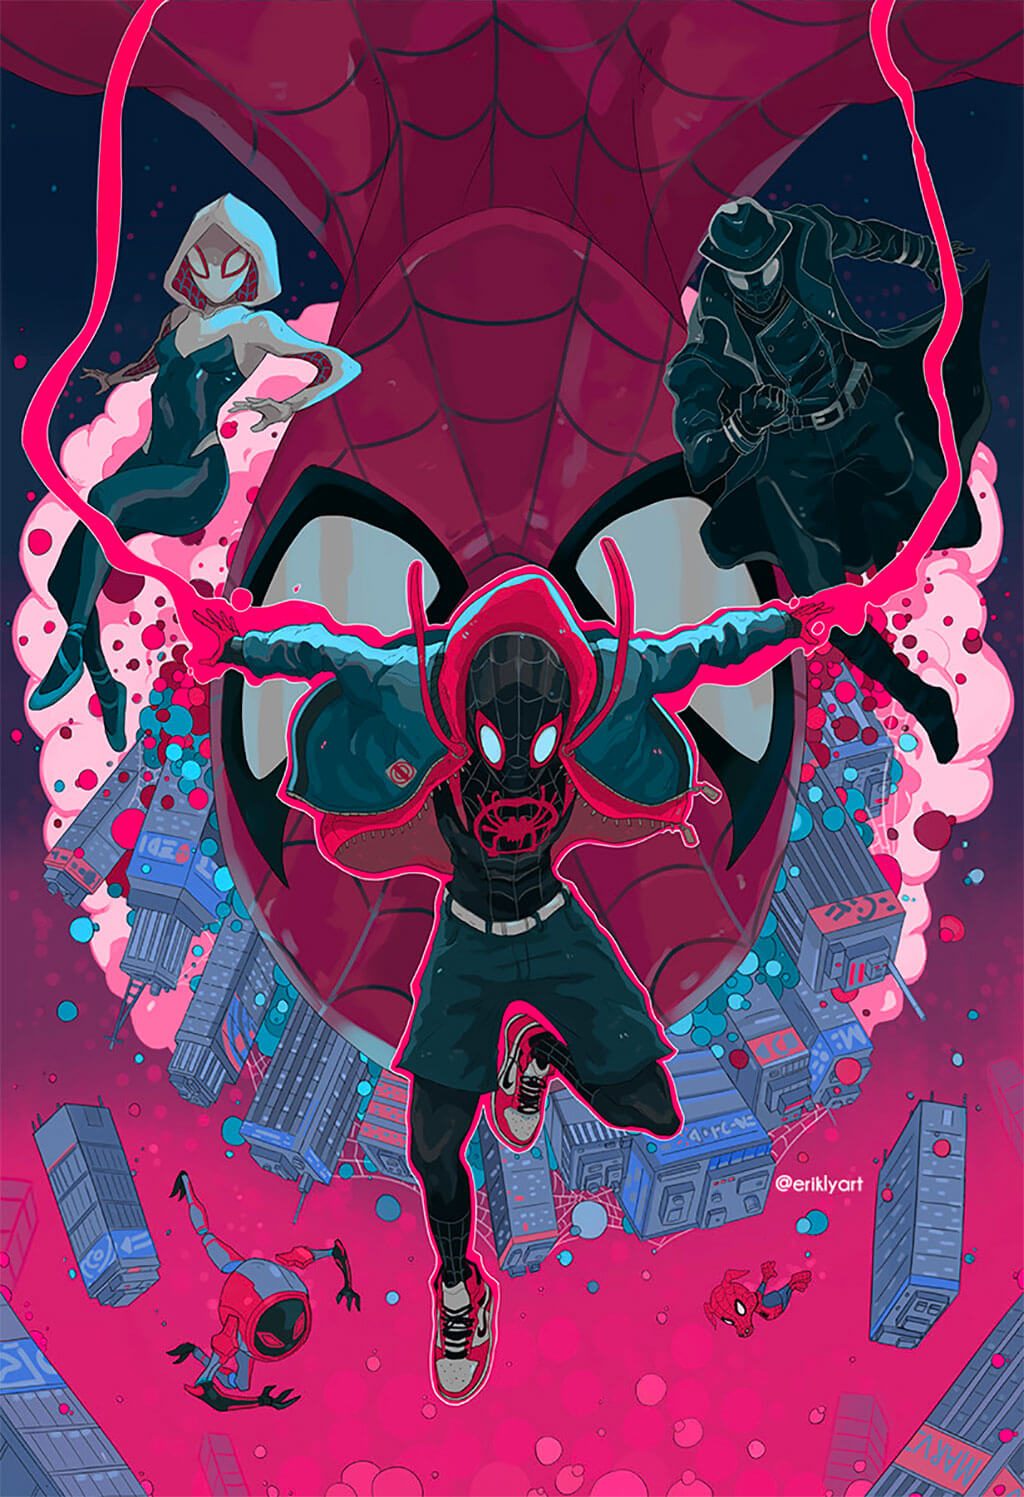 Spider-Man Fan Art by Erik Ly